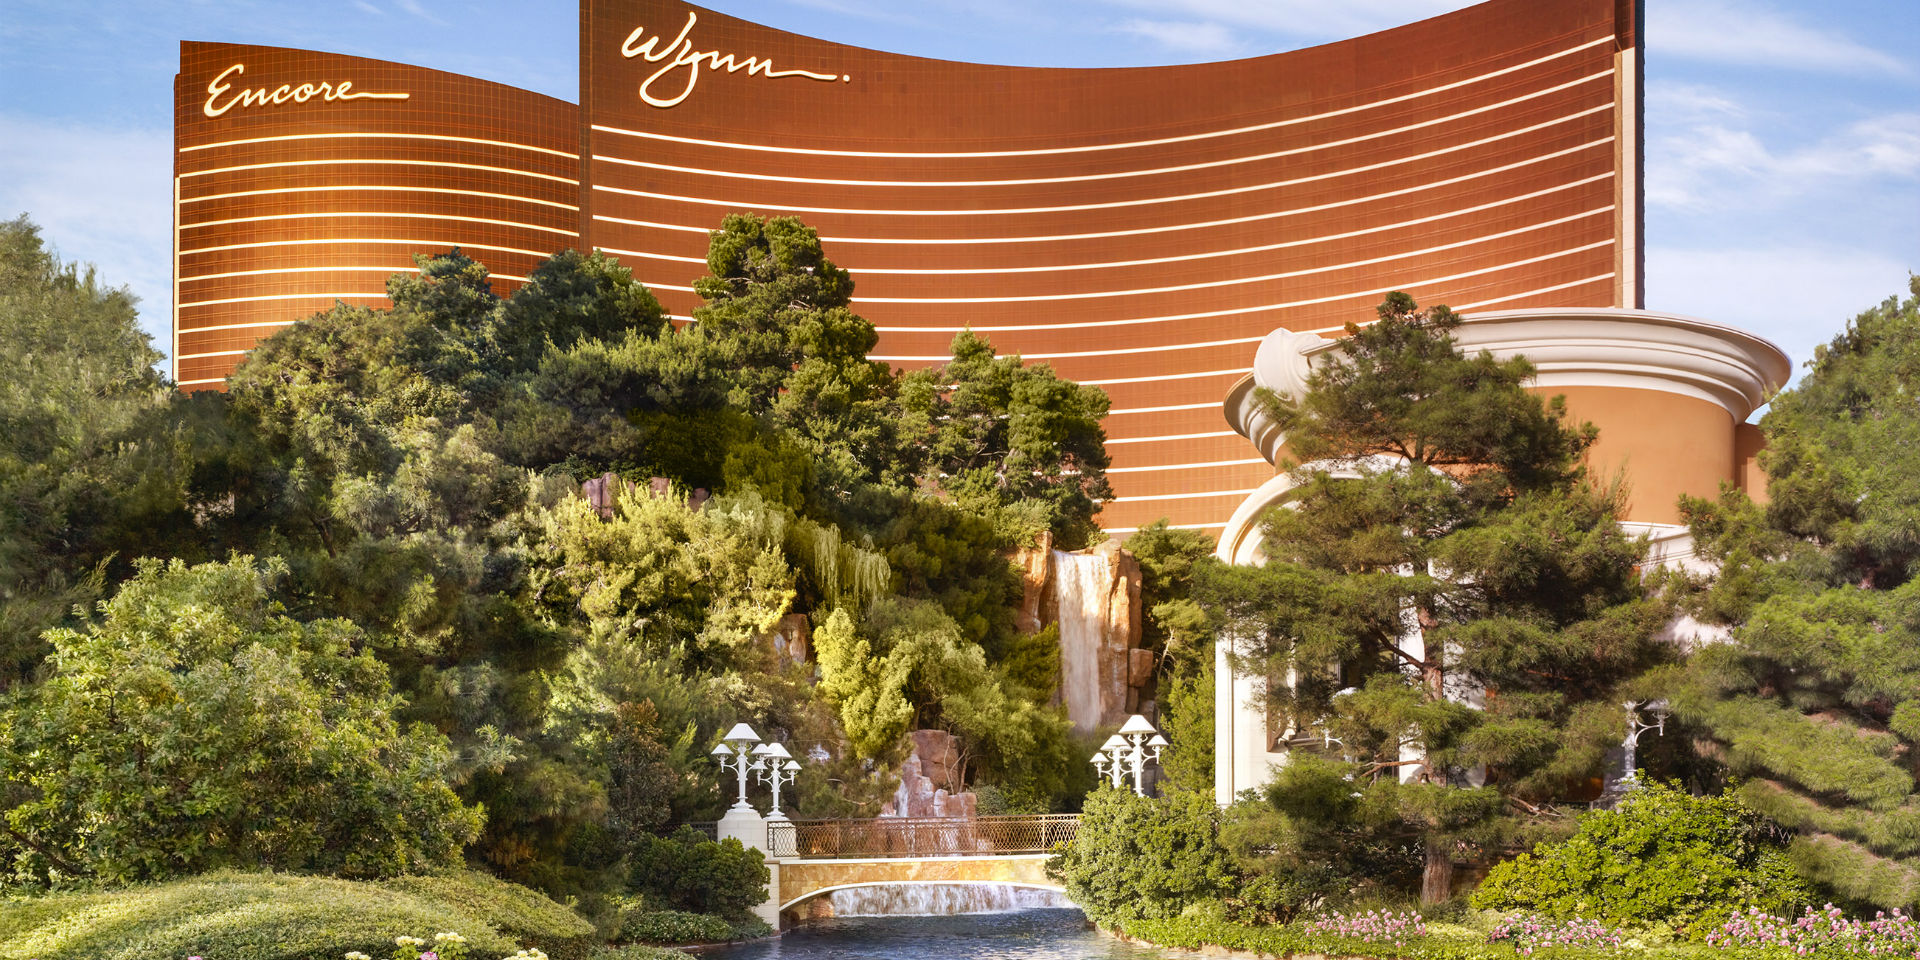 Wynn Resorts purchases Las Vegas site for new property